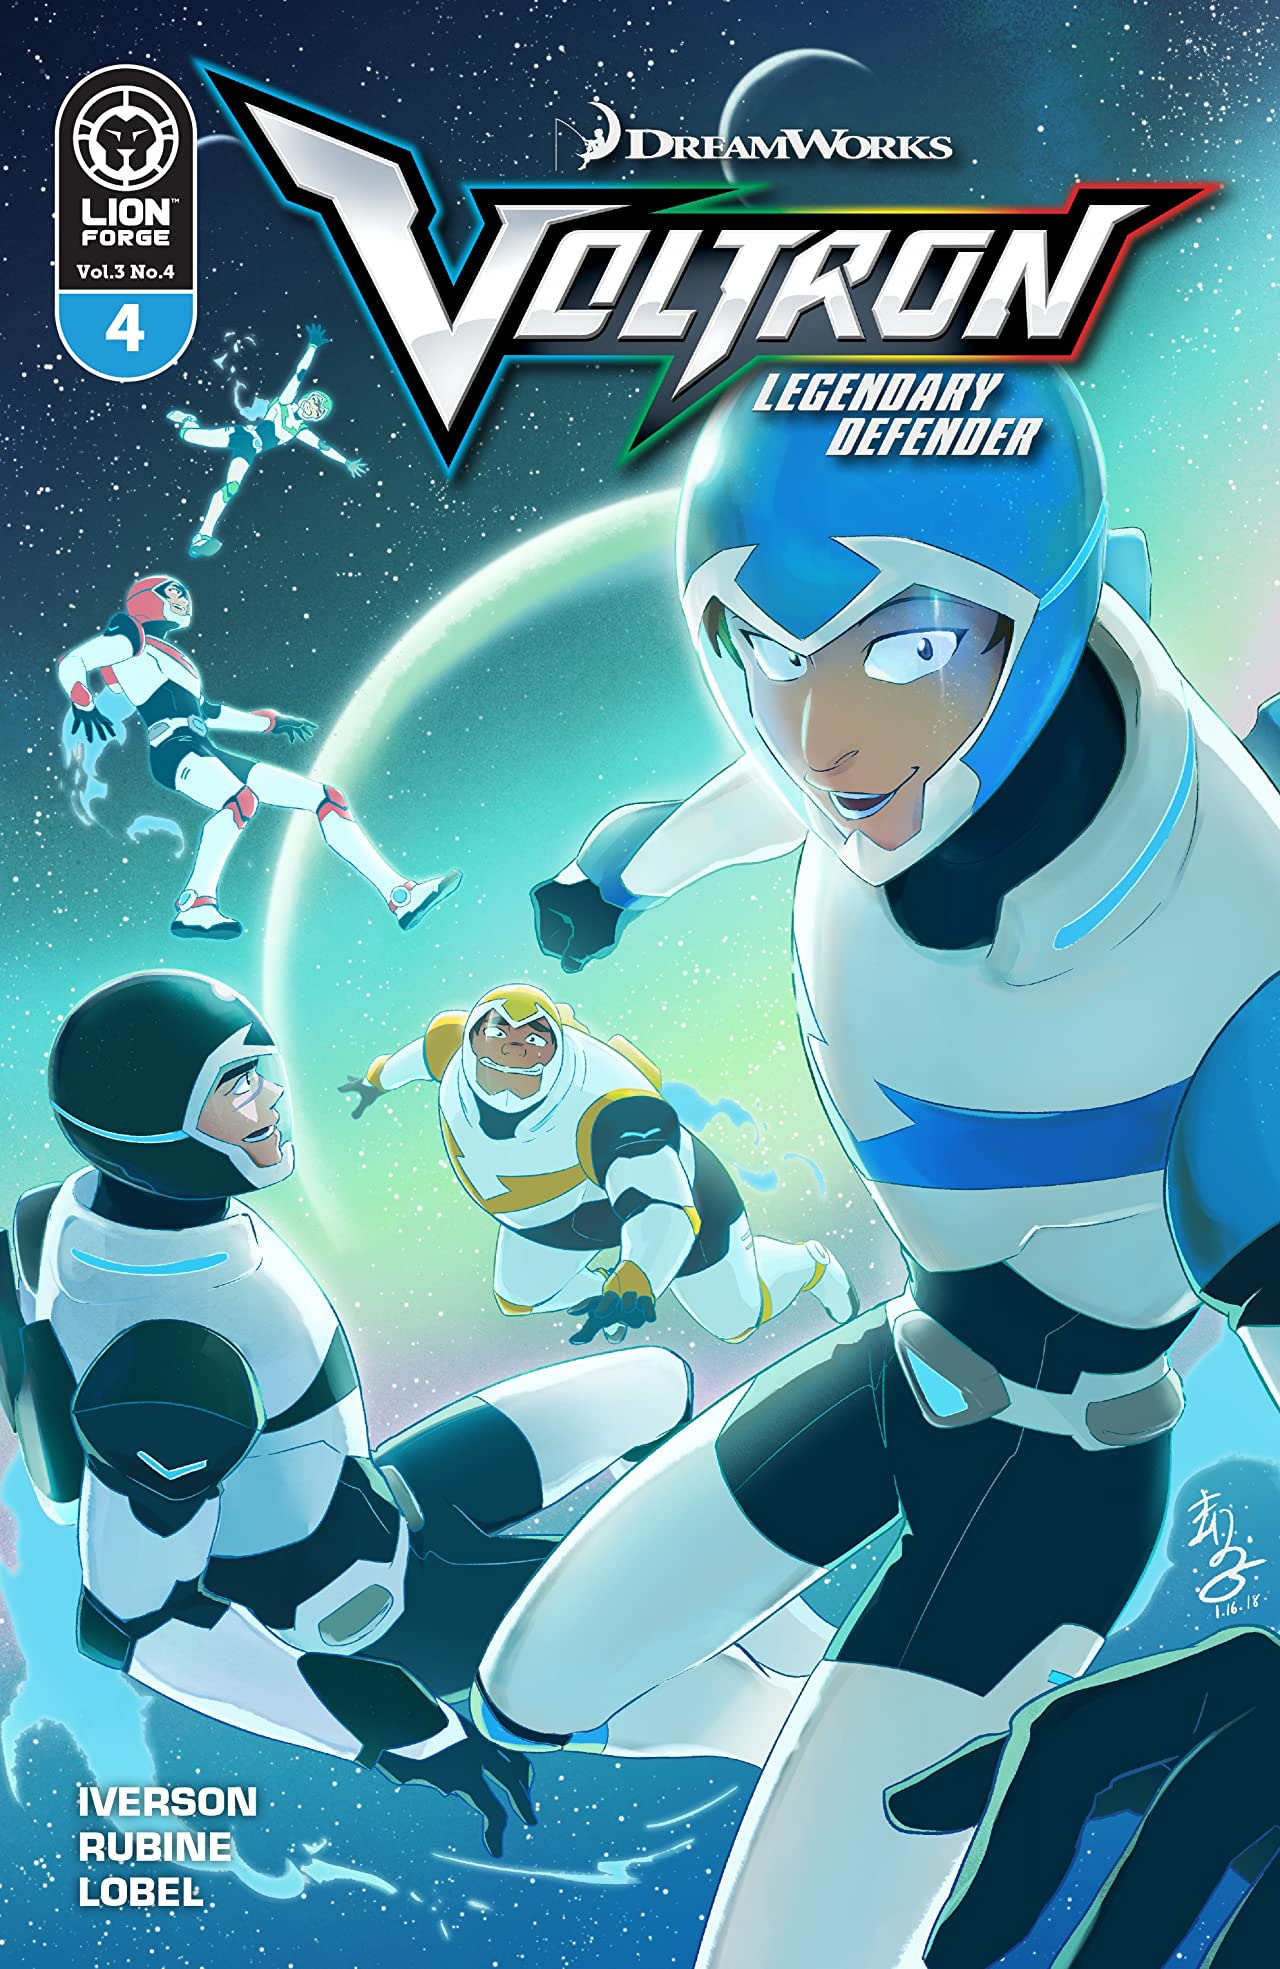 Voltron Legendary Defender Vol. 3 #4